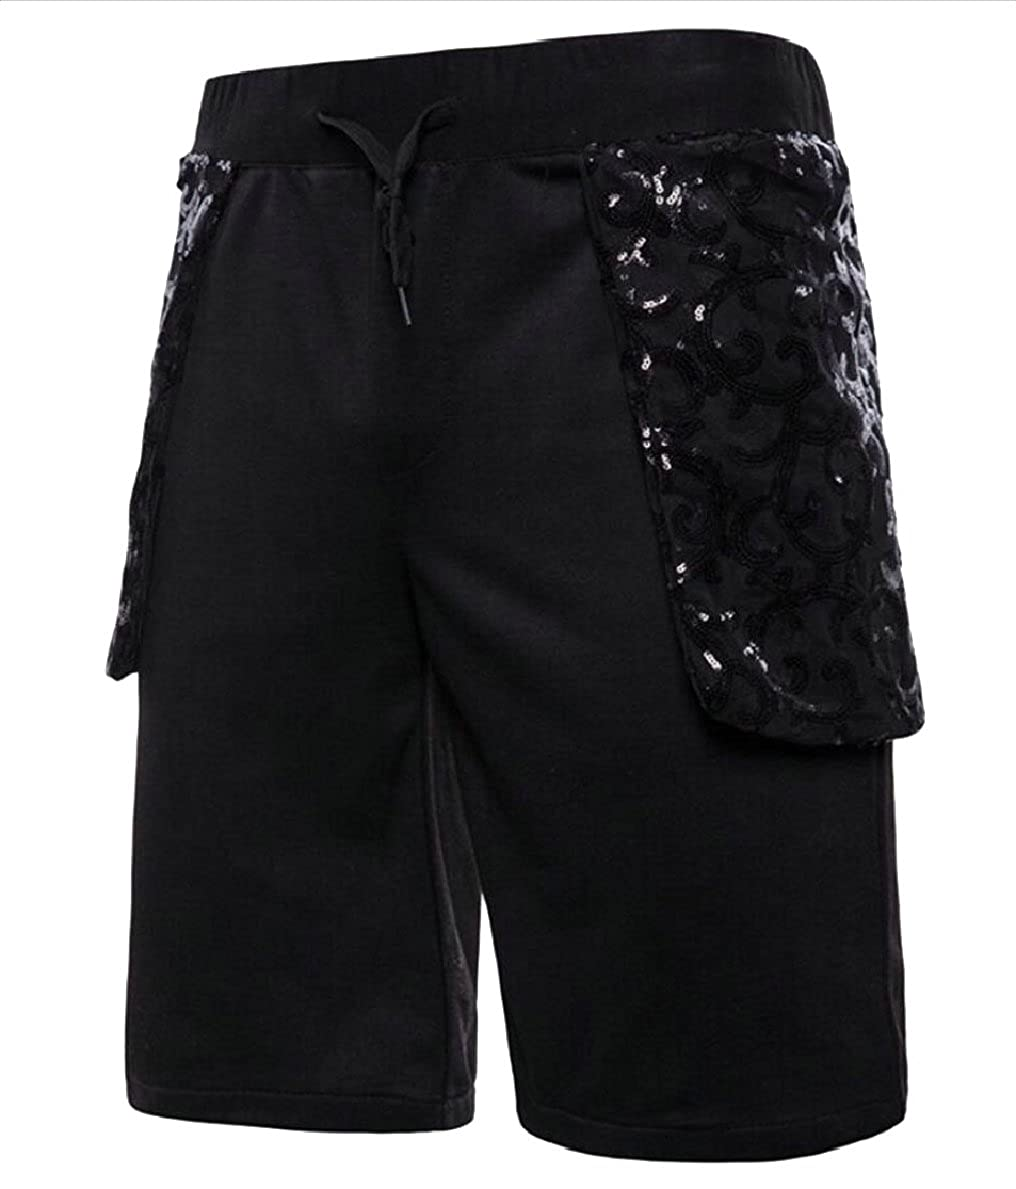 Gocgt Mens Stylish Drawstring Sequins Patchwork Straight Workout Shorts